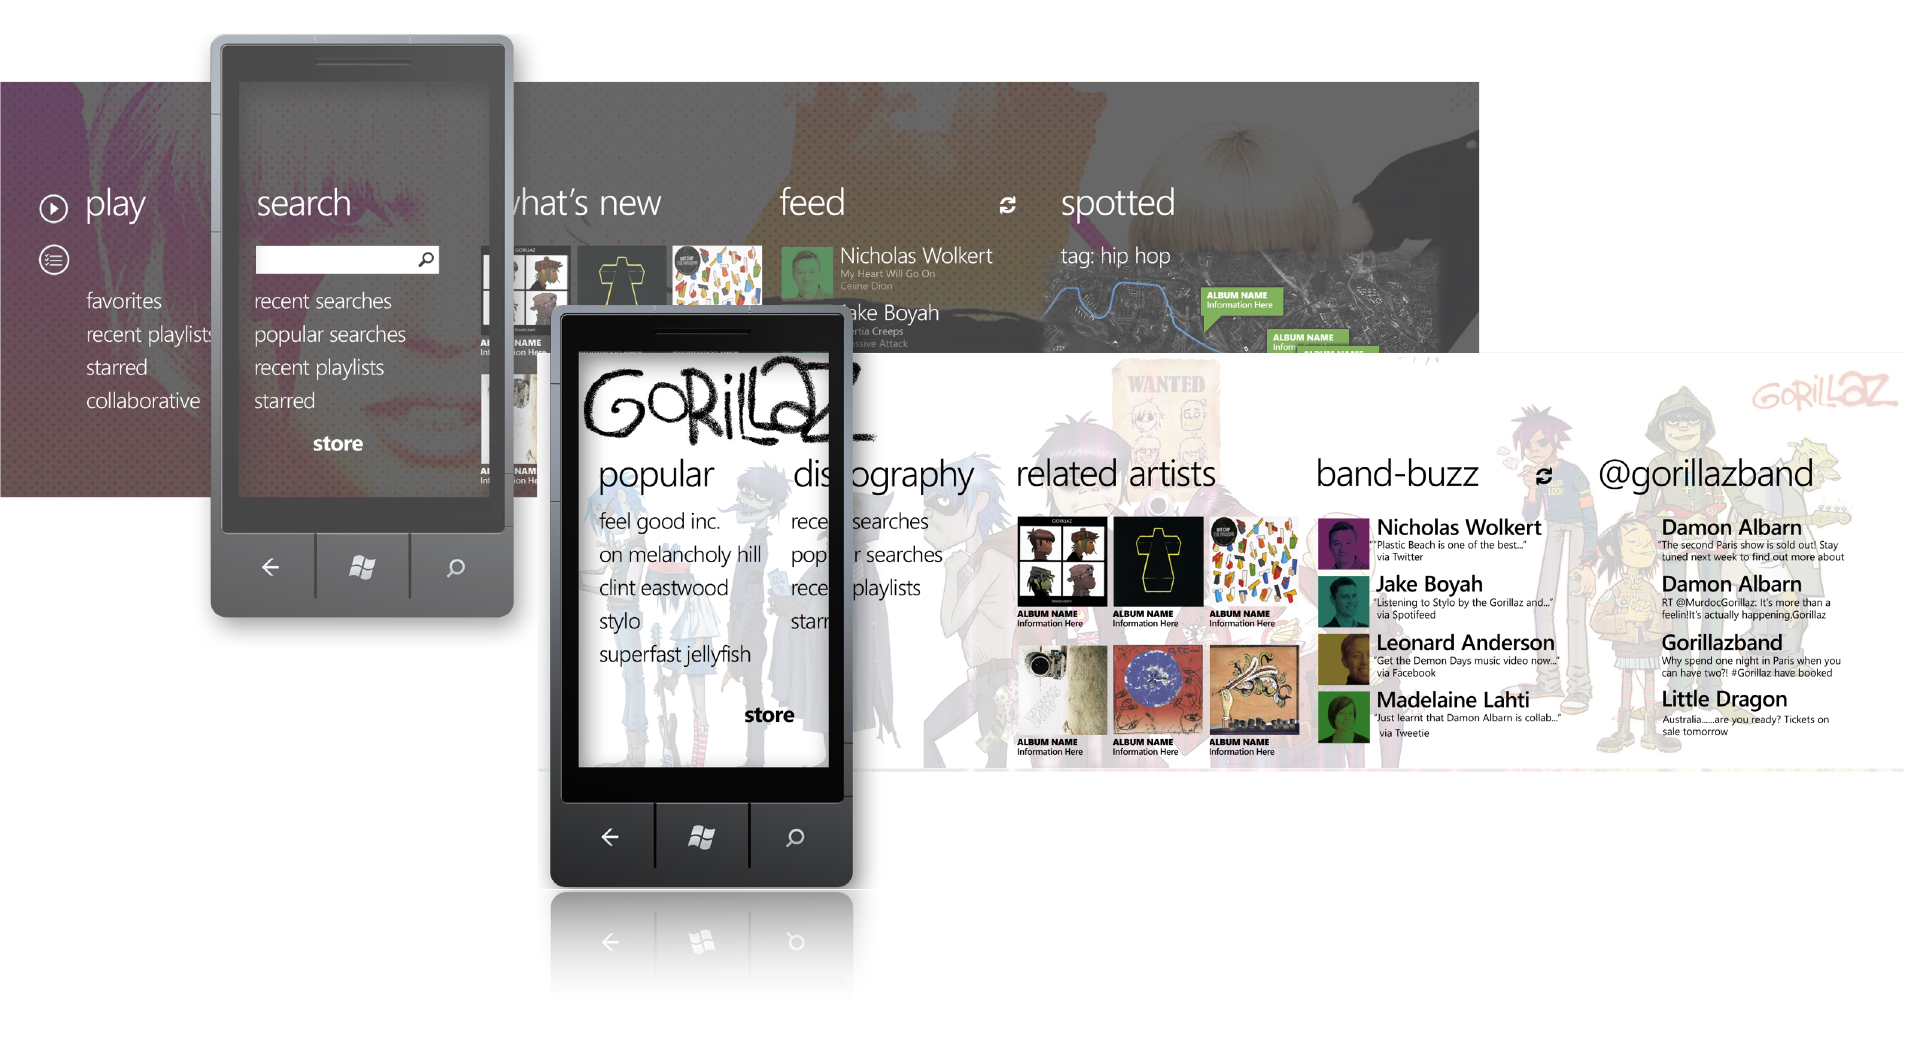 The early challenge for Windows Phone was to leverage their innovative new design language 'Metro' to do justice to Spotify's core - a social, rounded, music experience.